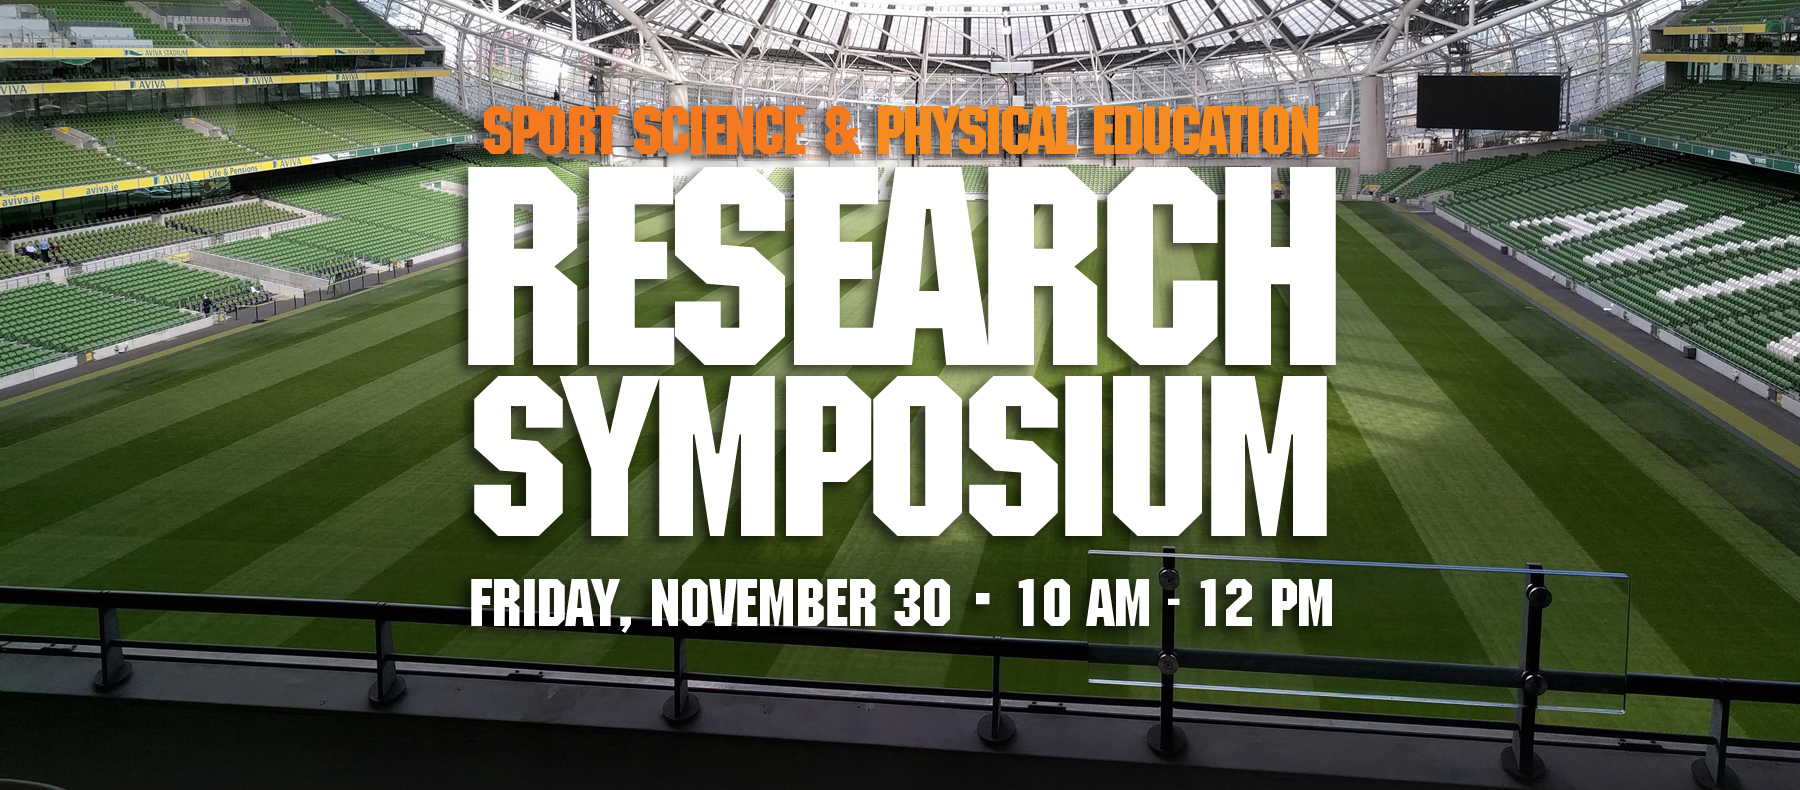 Sport Science and Physical Education Research Symposium Friday, November 30 10 a.m. - 12 p.m.